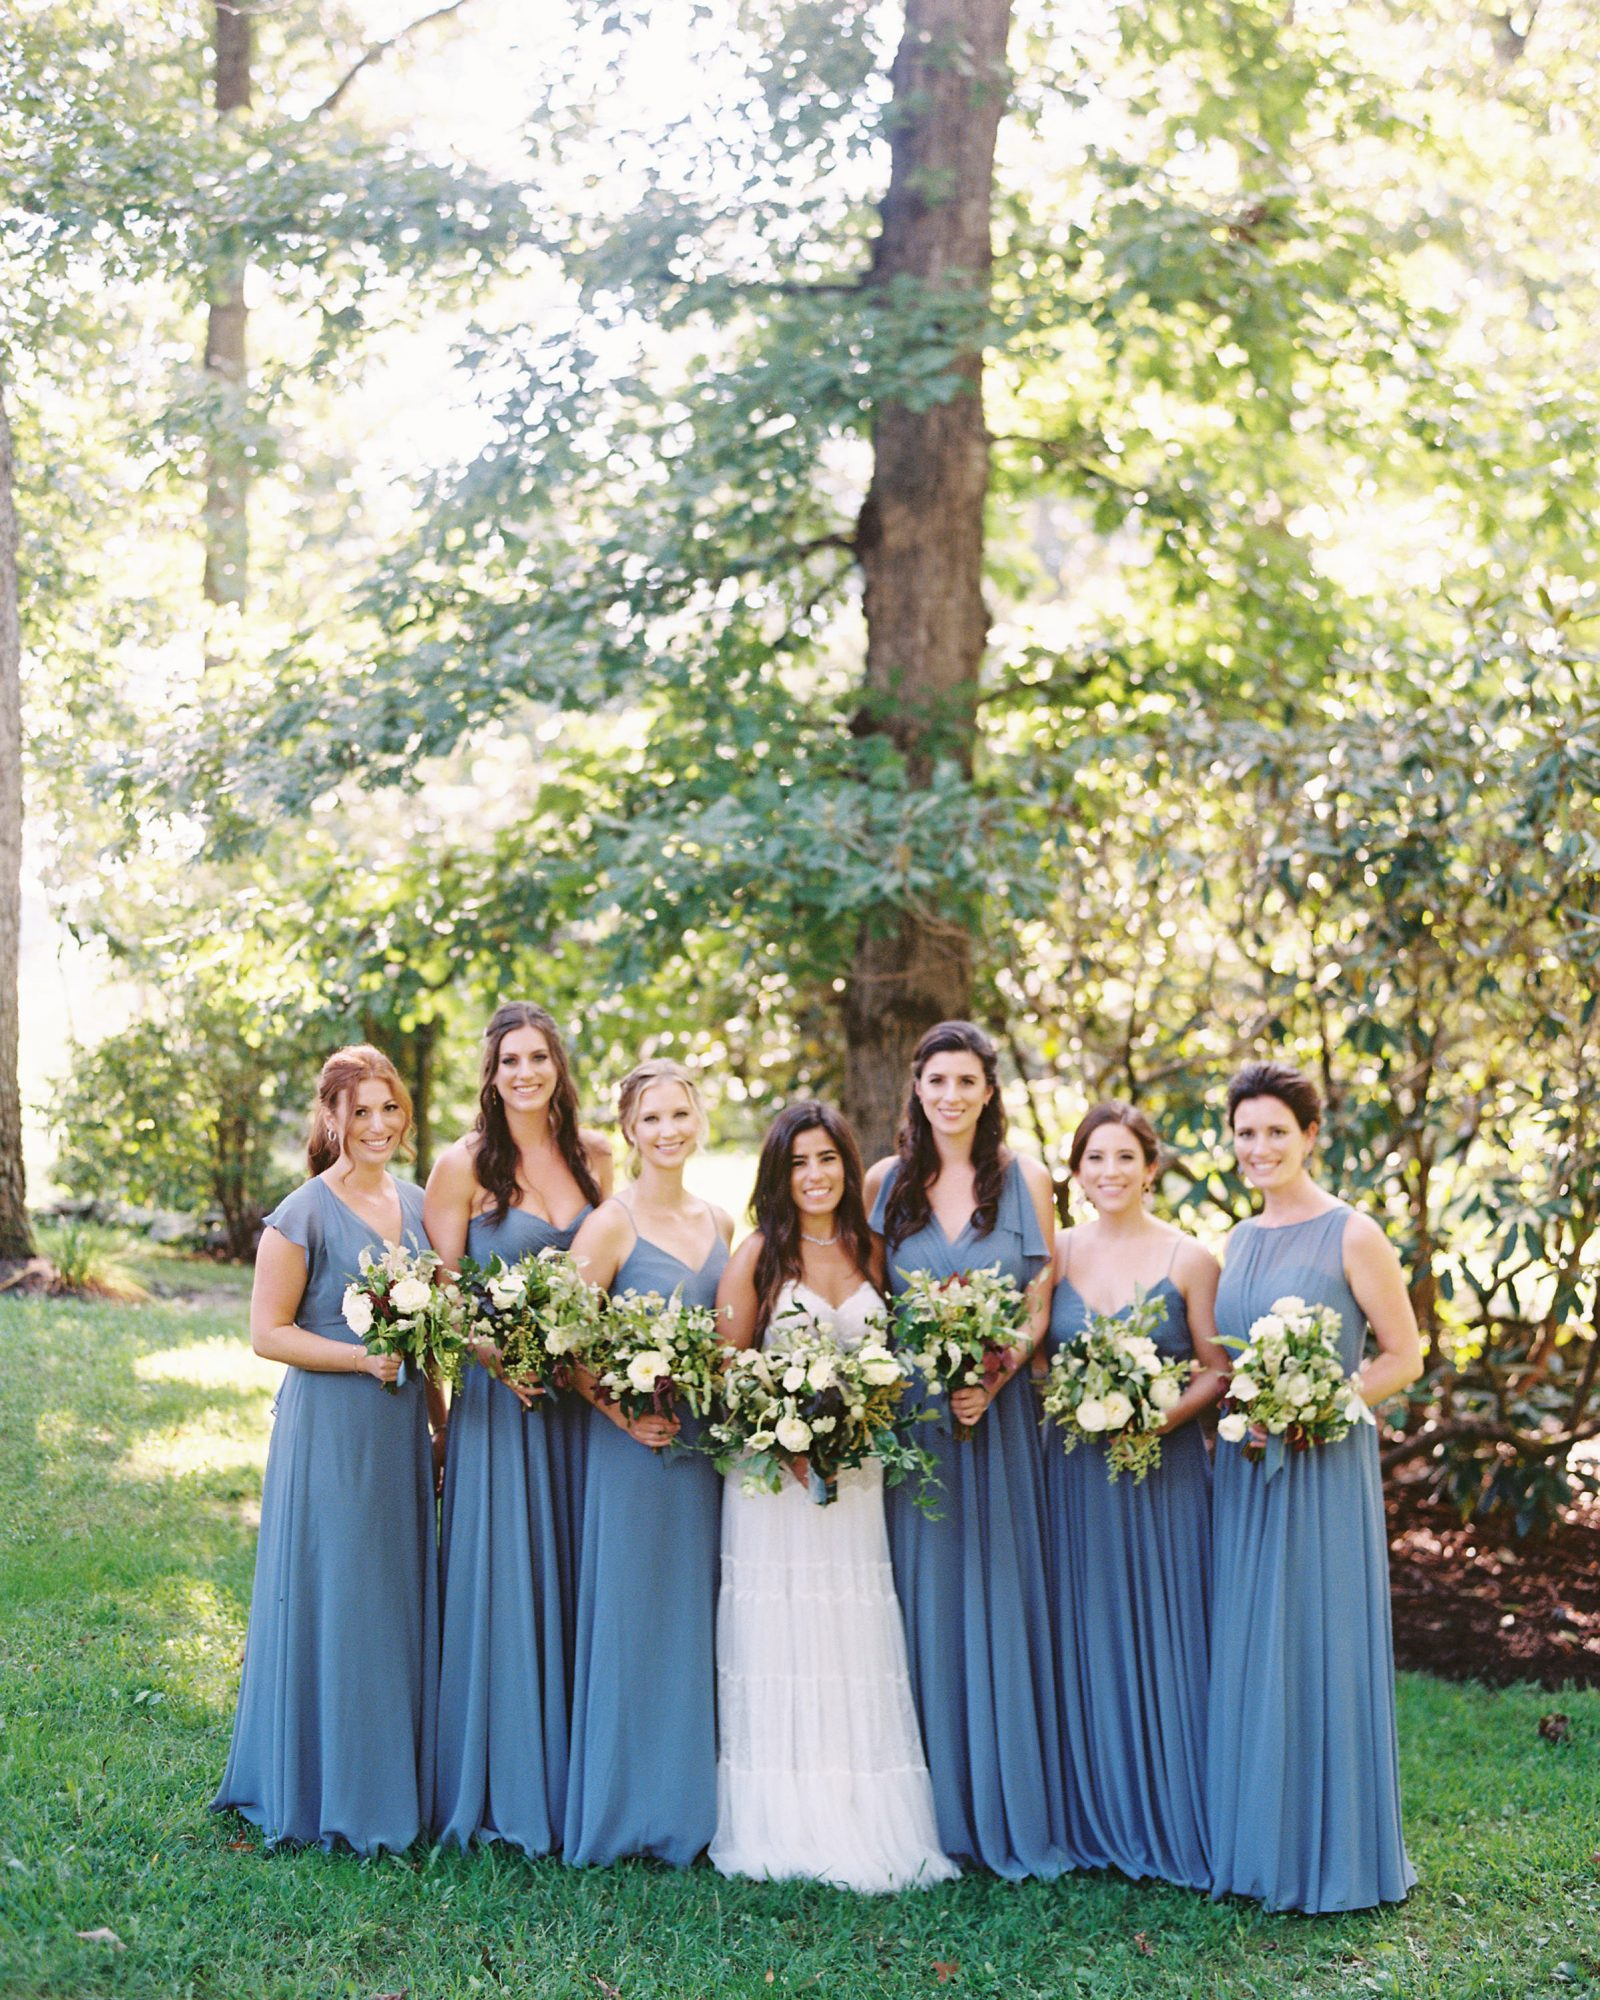 bride and bridesmaids pose outdoors in blue dresses